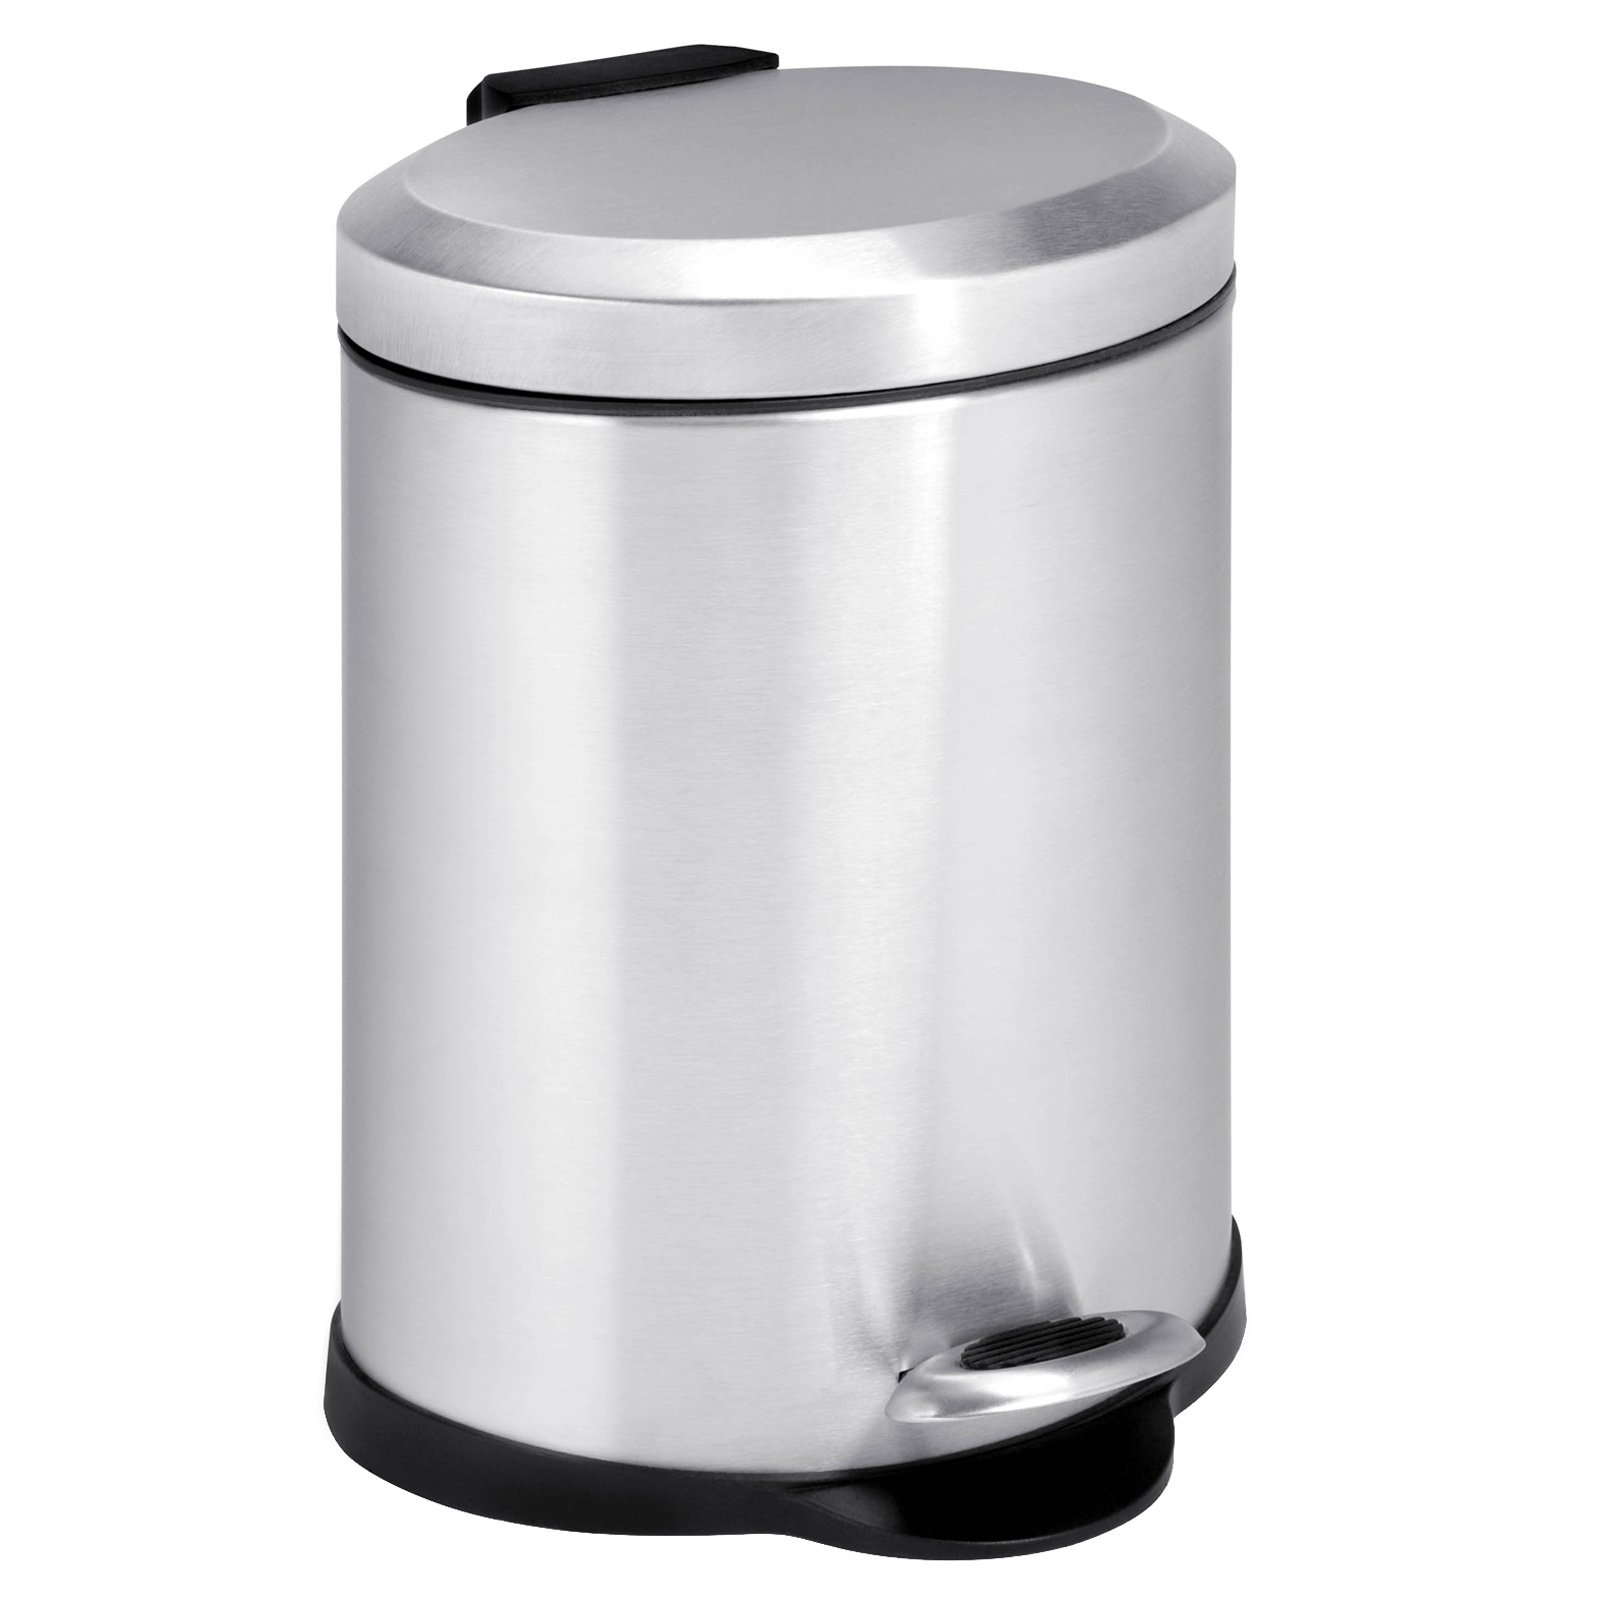 Honey Can Do Oval Stainless Steel Step 1 Gallon Trash Can